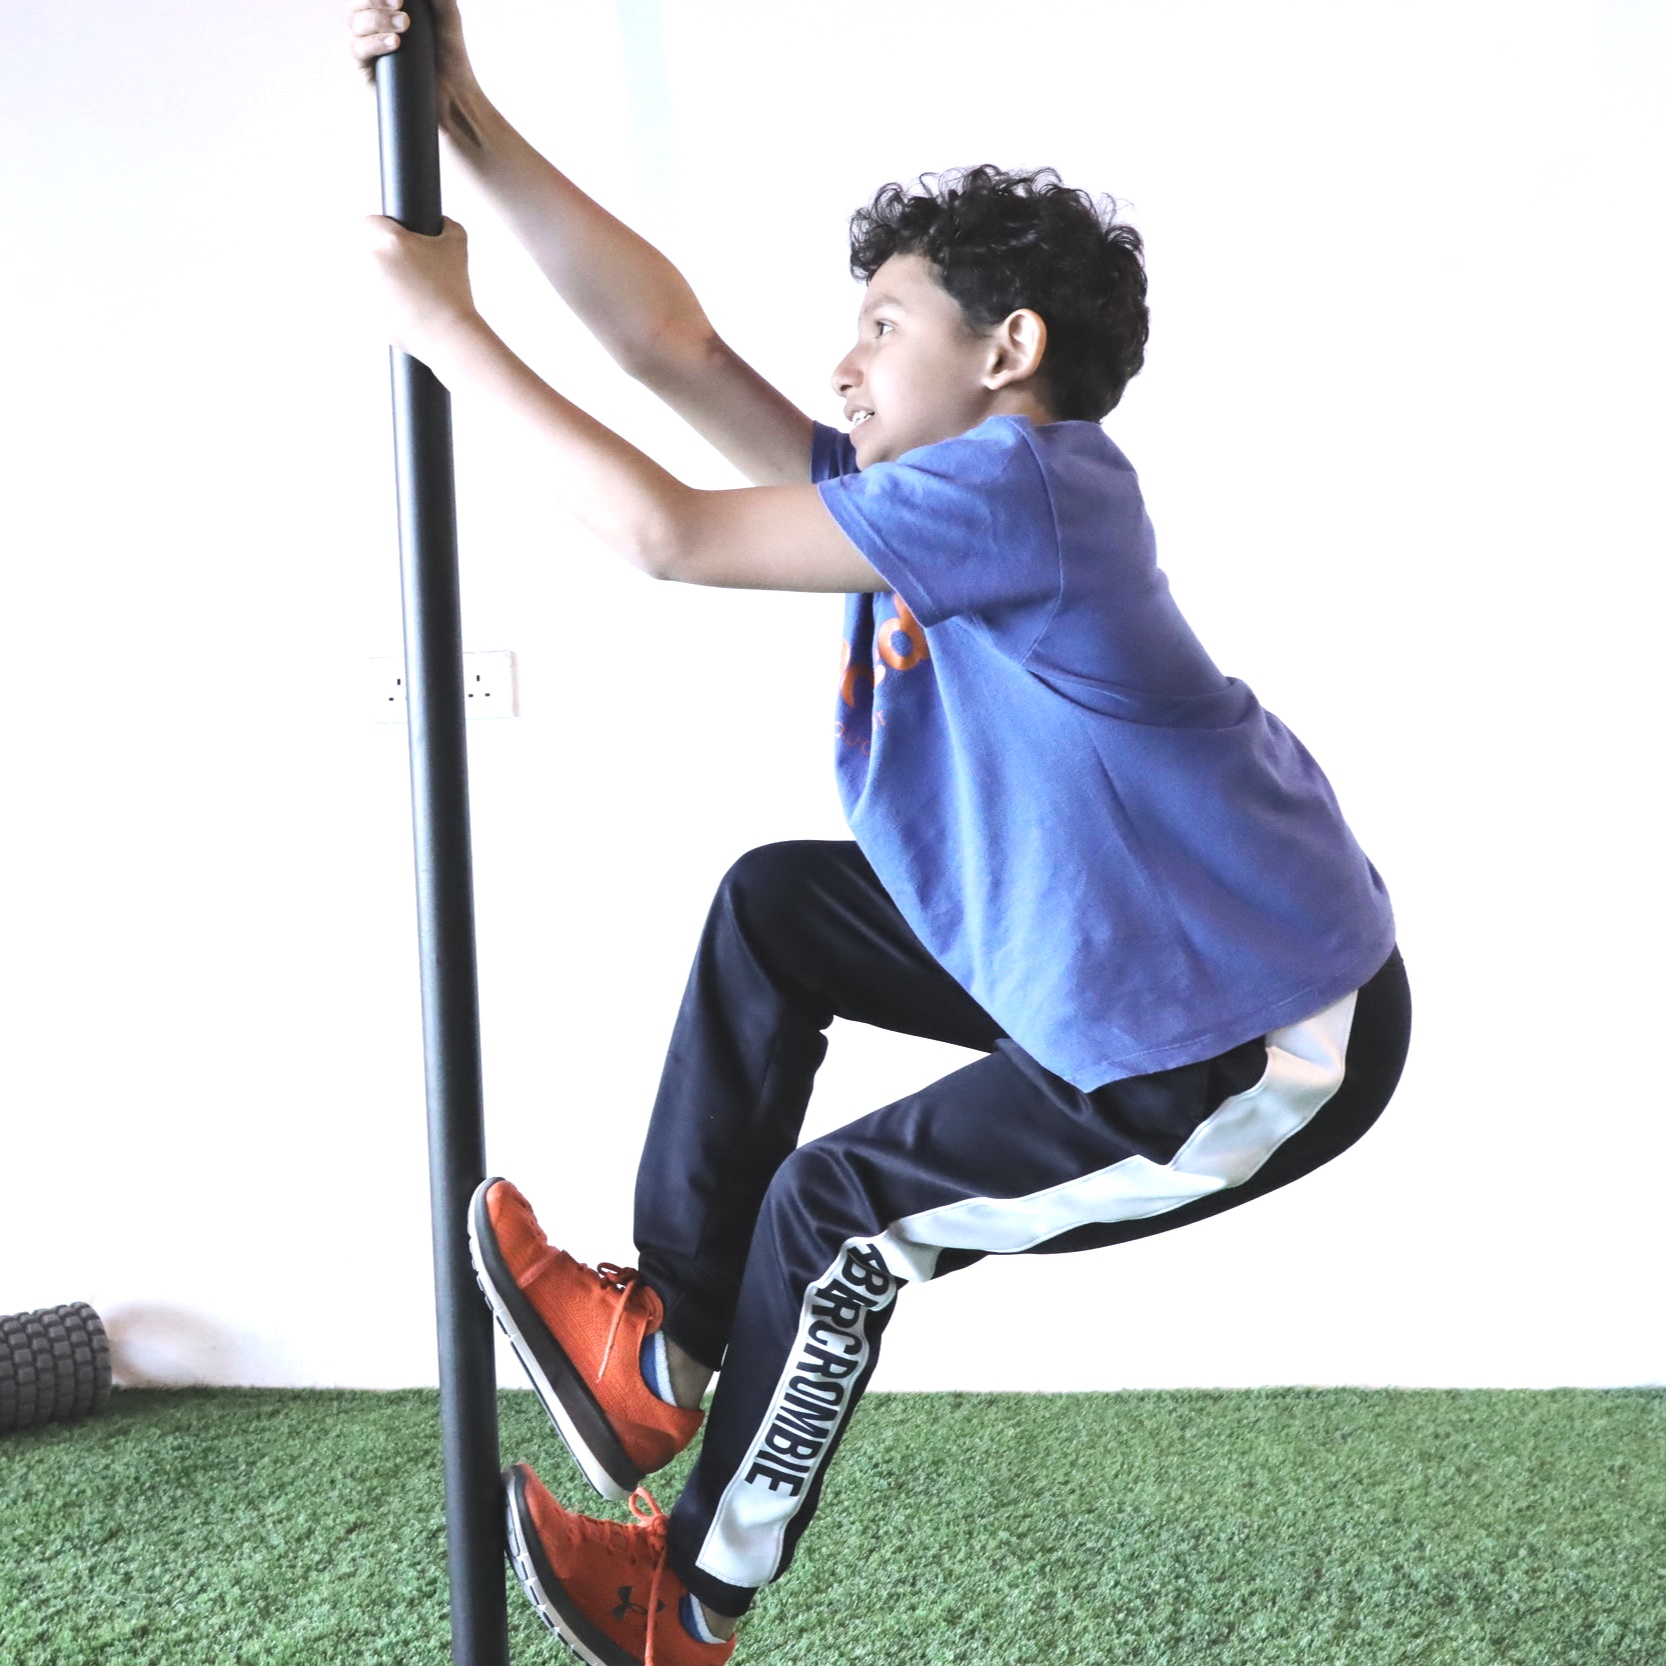 USEFUL STRENGTH - Each class is carefully designed to teach effective movement and establishes quality strength, fitness and coordination. These skills are transferable into every other sport on the planet so our students have the physically and mental ability to stay strong, healthy and active for the rest of their lives.